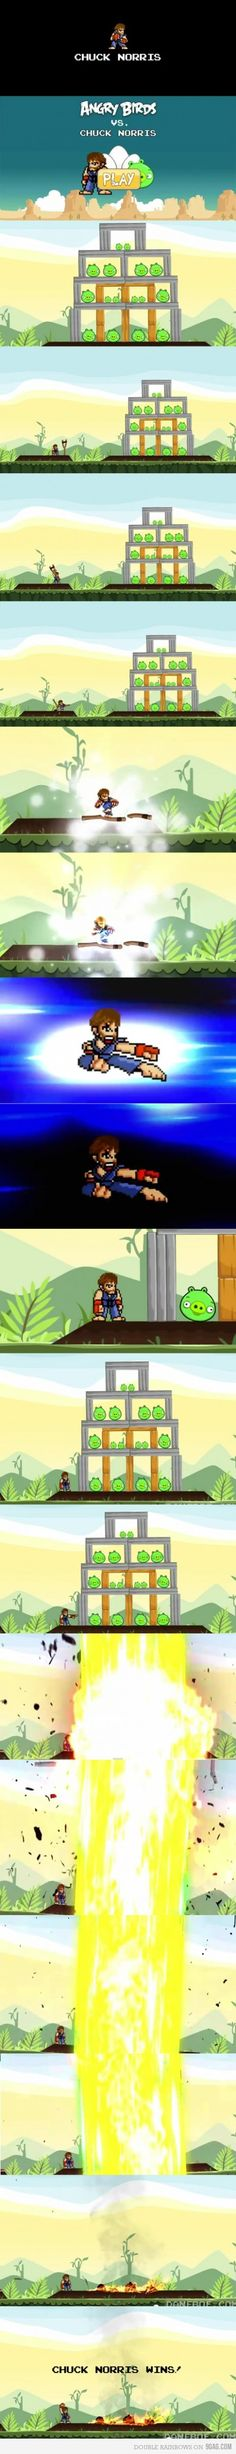 Angry Birds v Chuck Norris